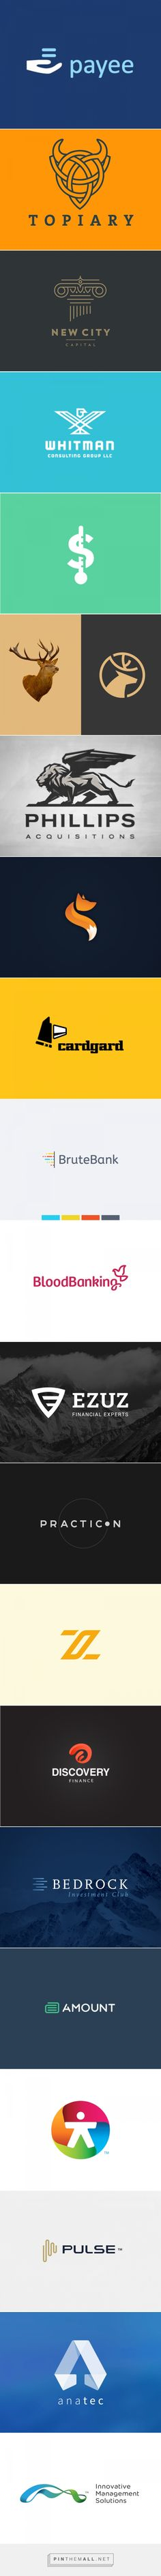 30 Elegant Financial Logo Designs  | inspirationfeed.com - created via http://pinthemall.net